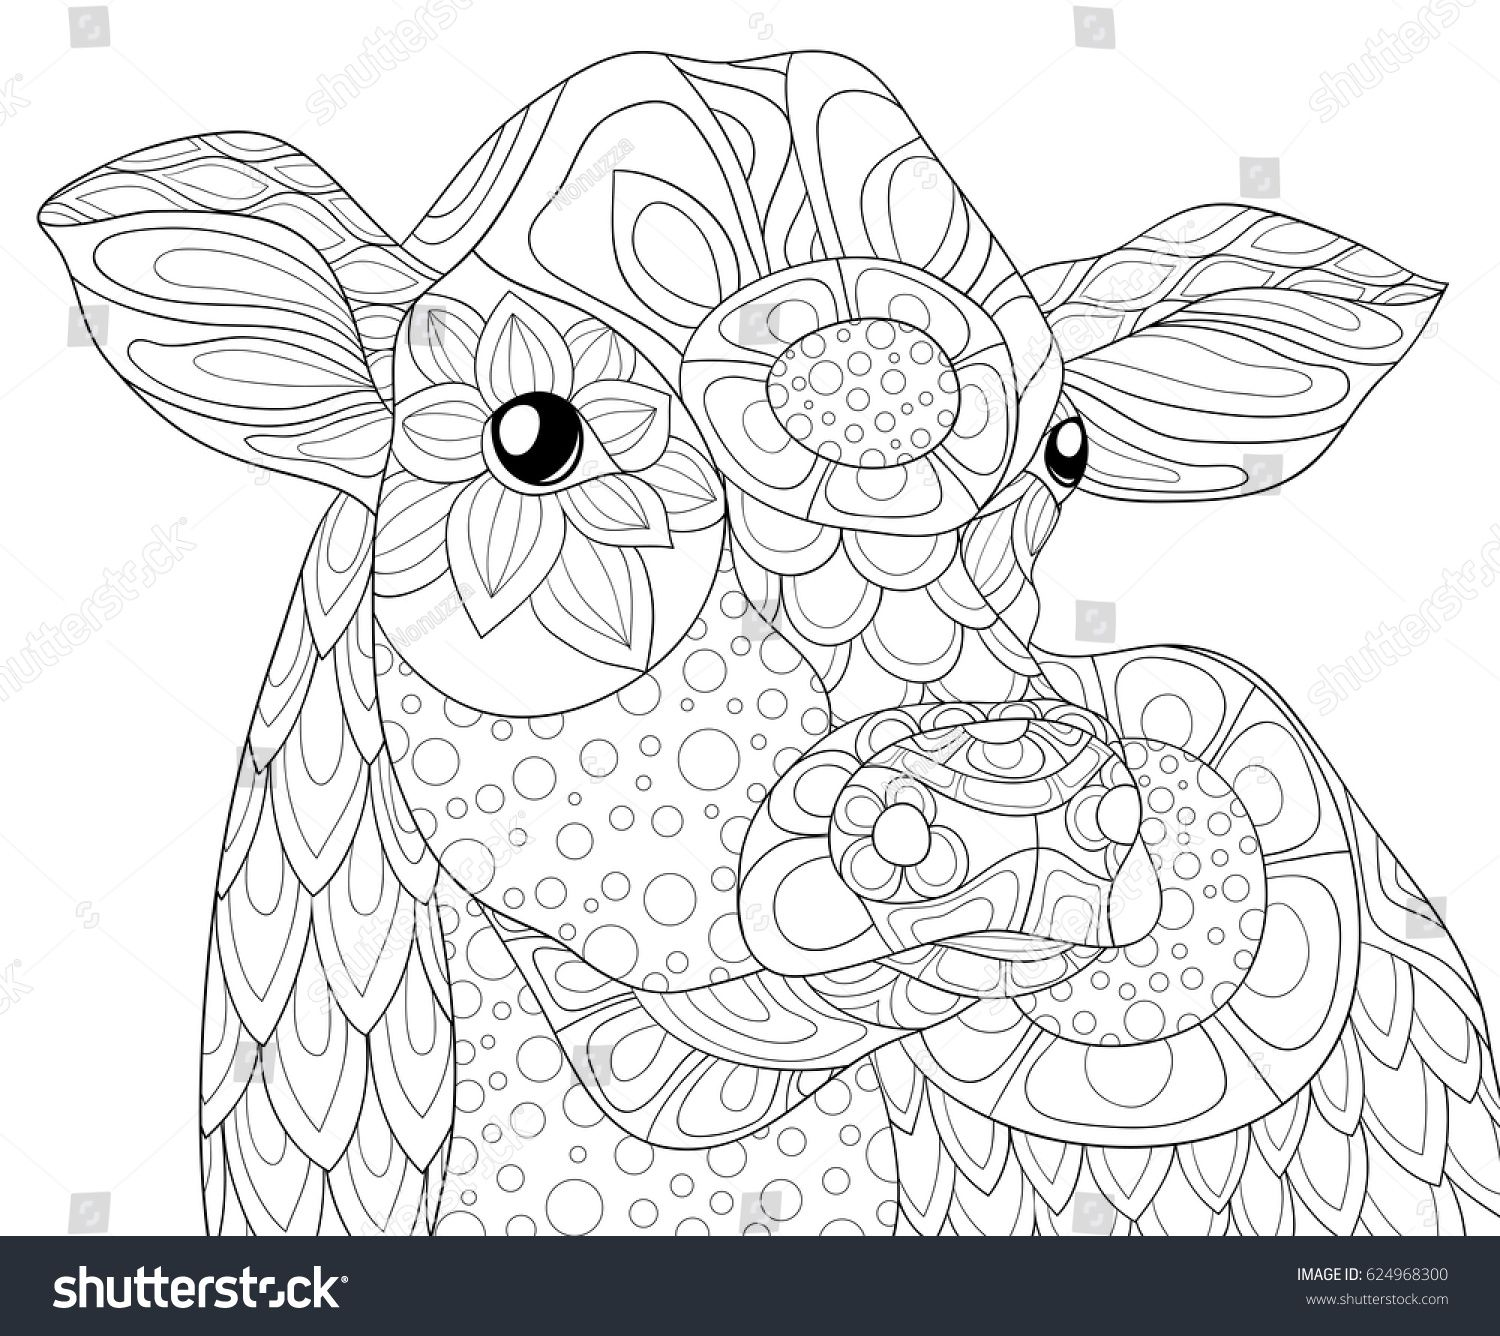 Adult coloring page cow zen art style illustration